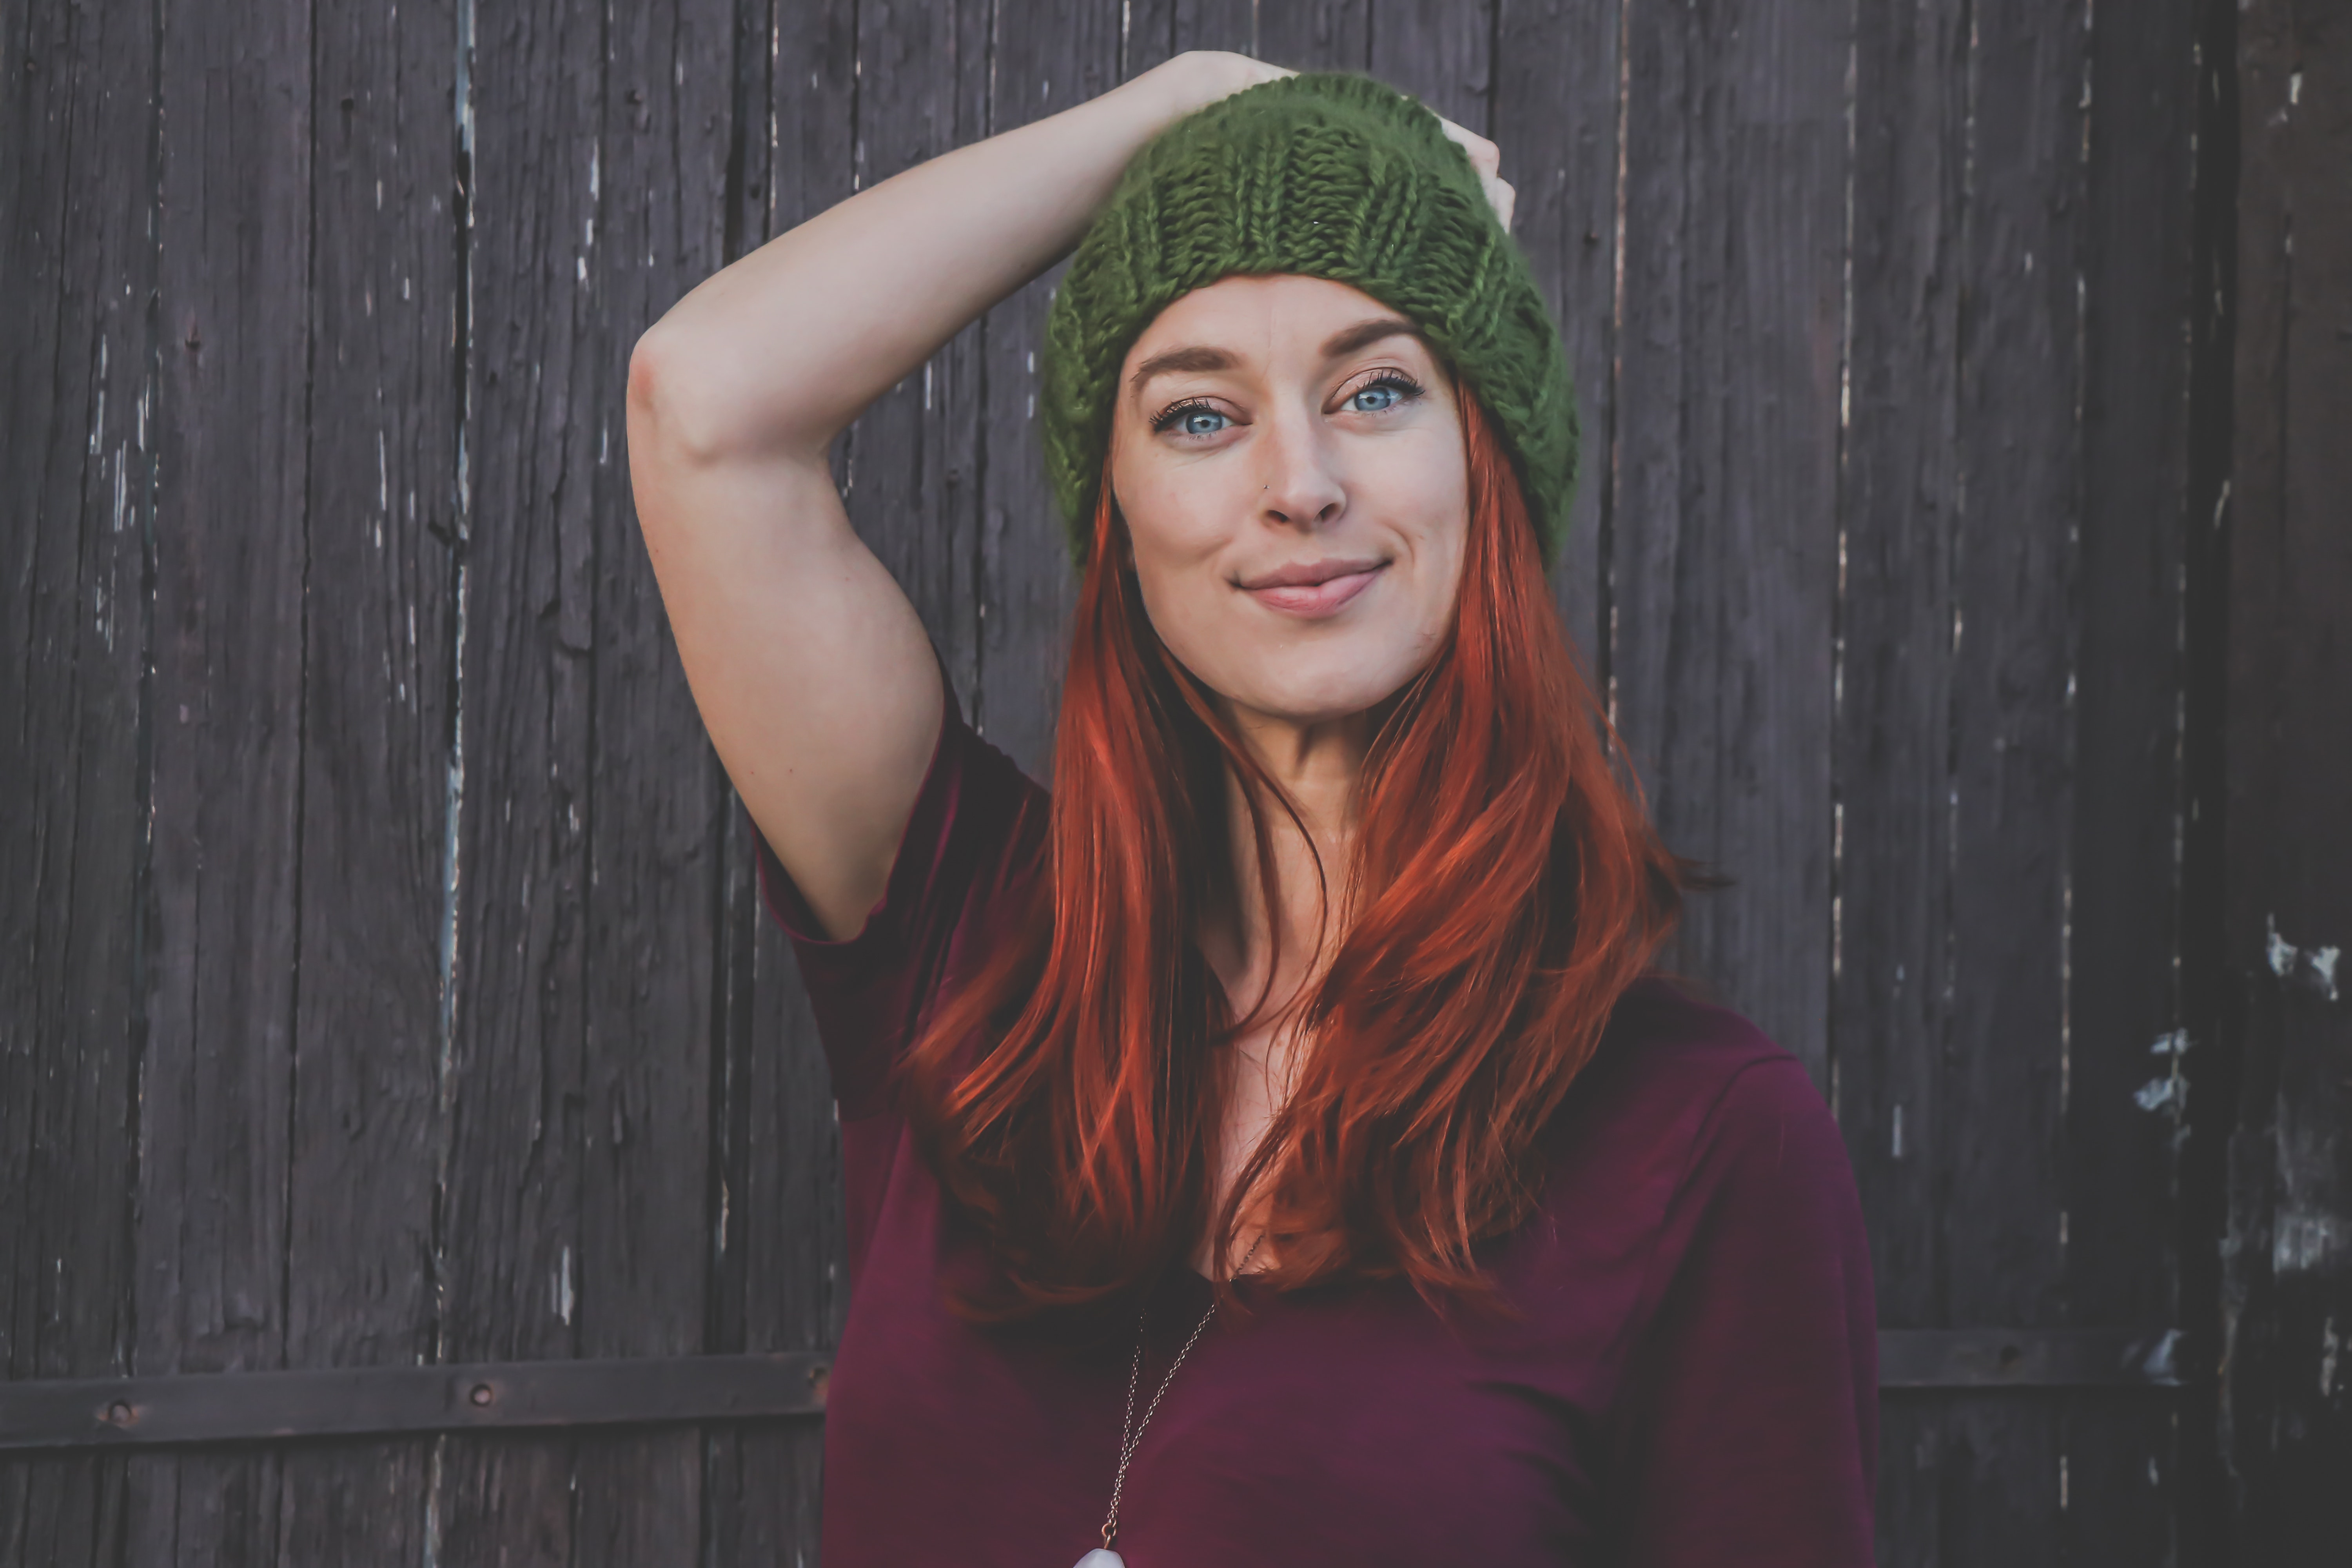 Red haired woman in maroon top wearing green beanie photo